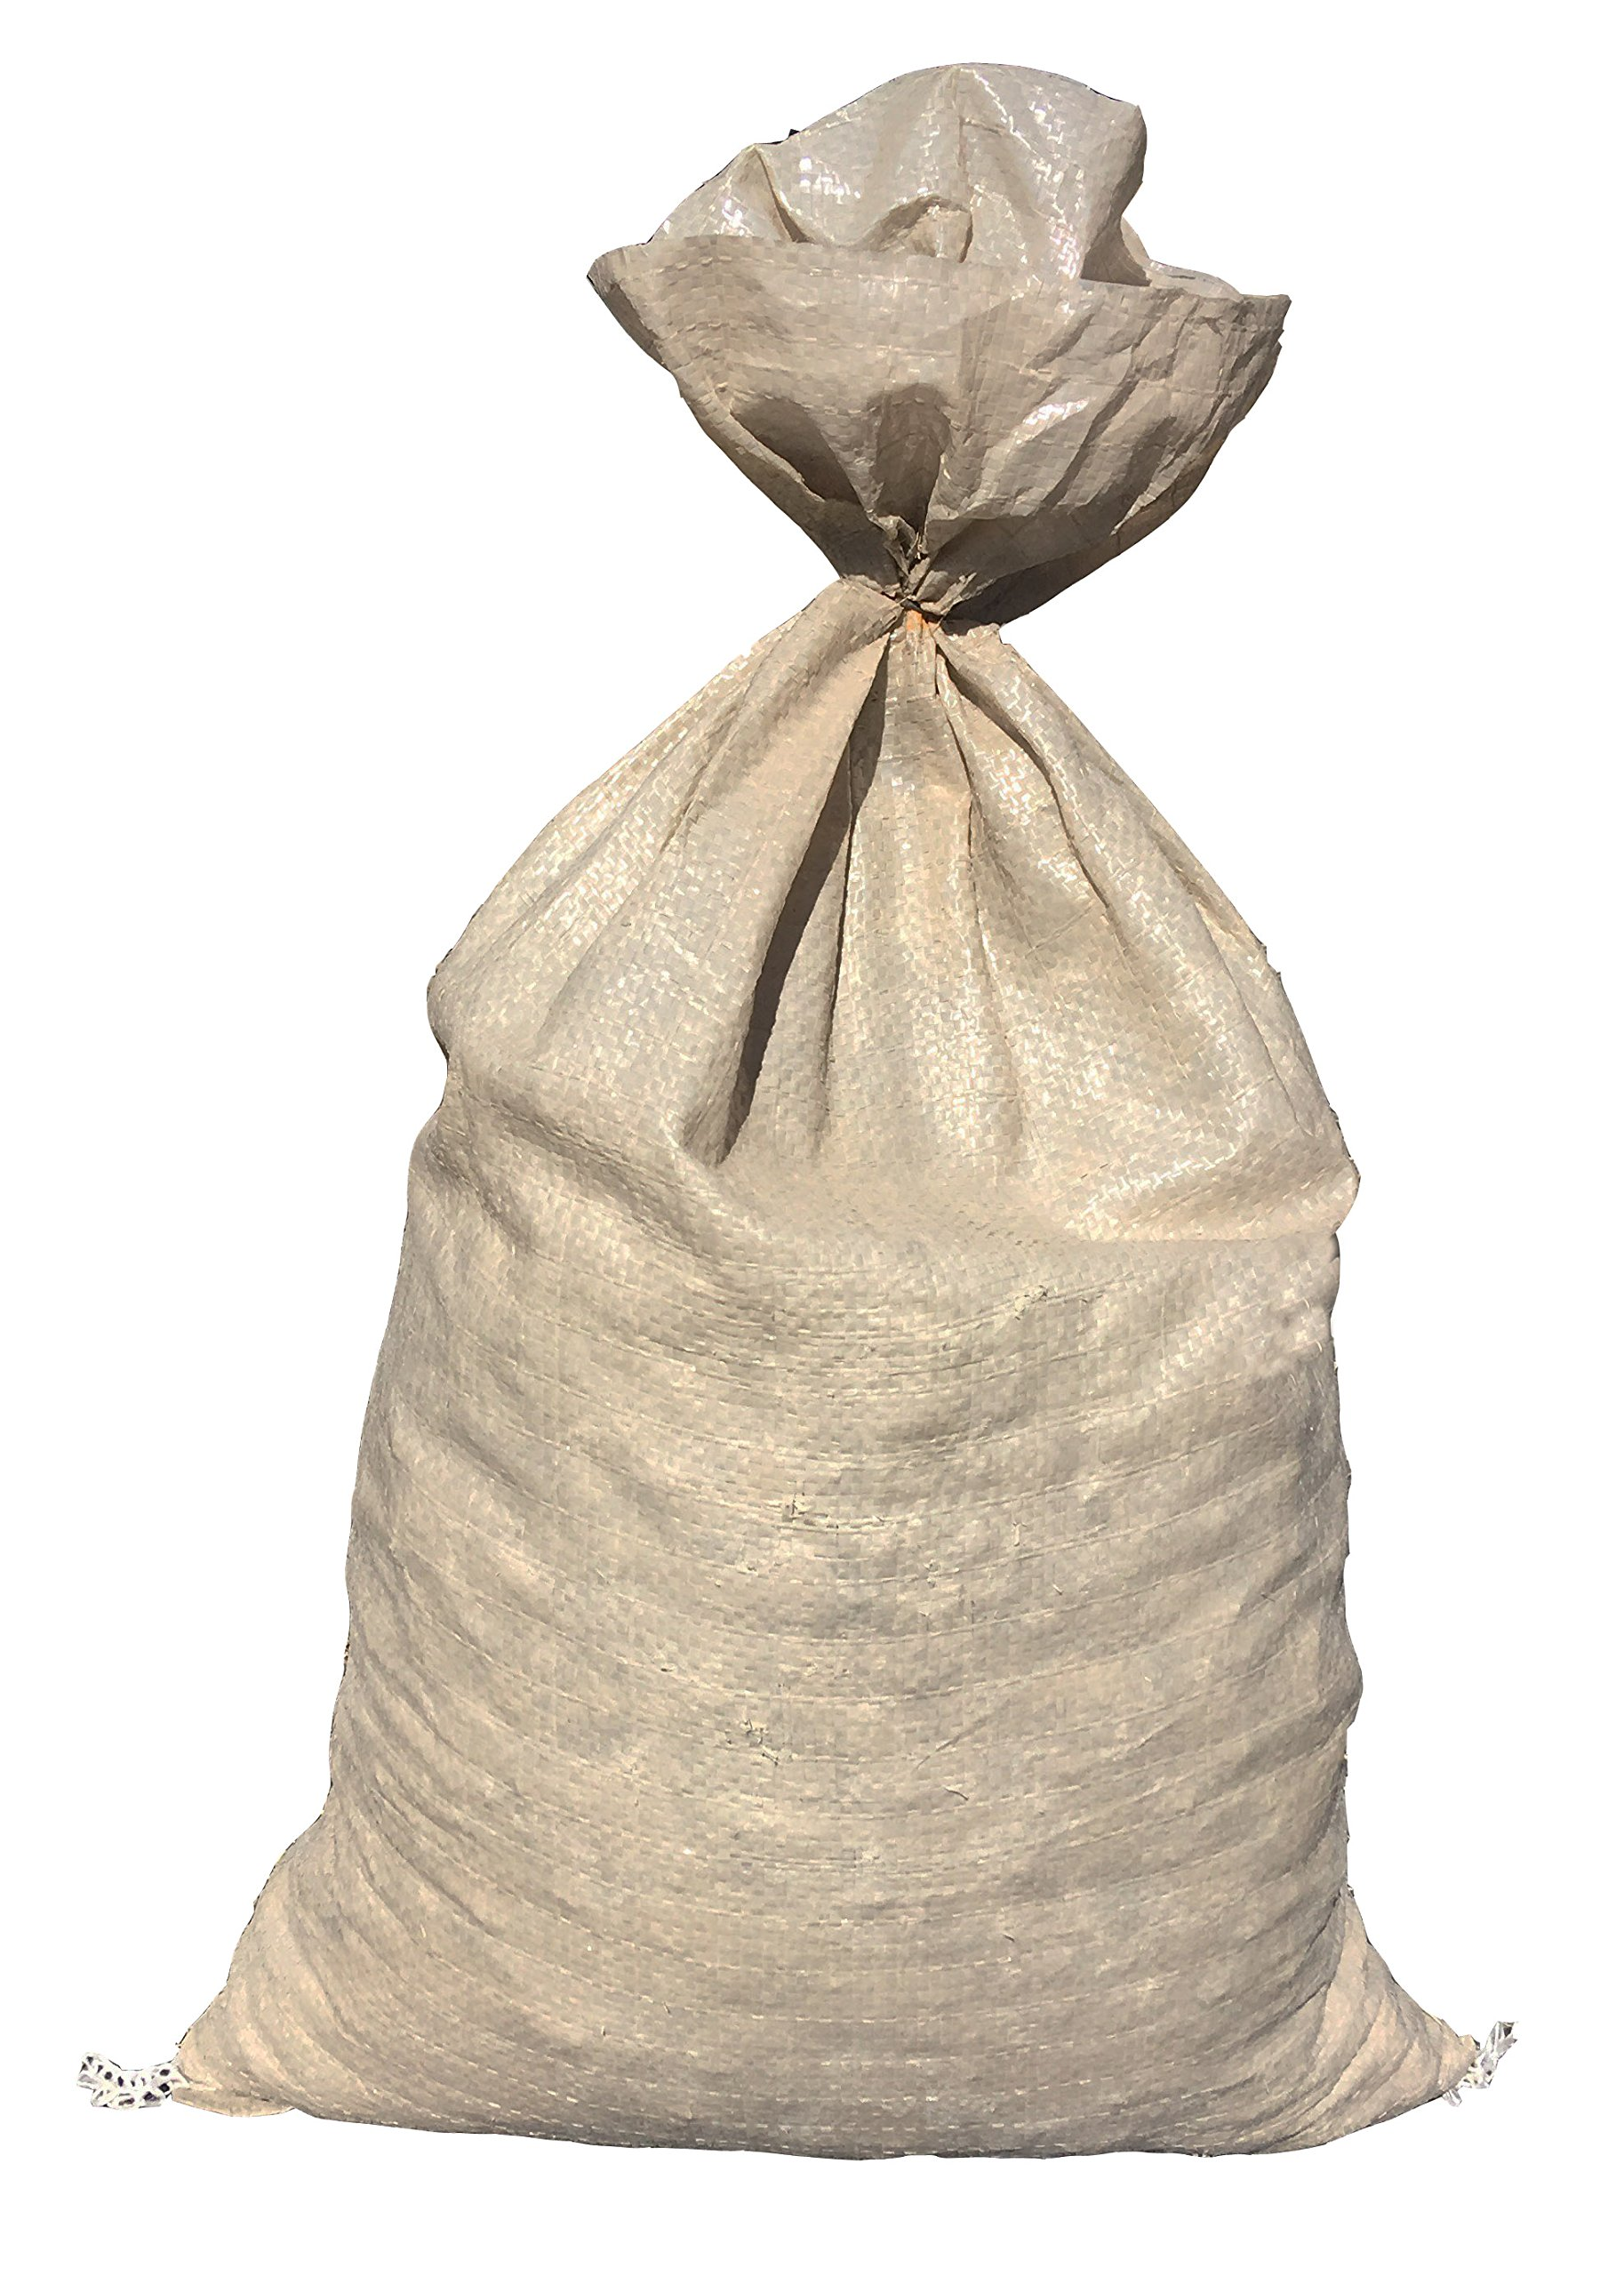 Sandbaggy - Empty Poly Sandbags W/UV Protection - Size: 14'' x 26'' - Color: Beige - Military Grade (100 Sandbags) by Sandbaggy